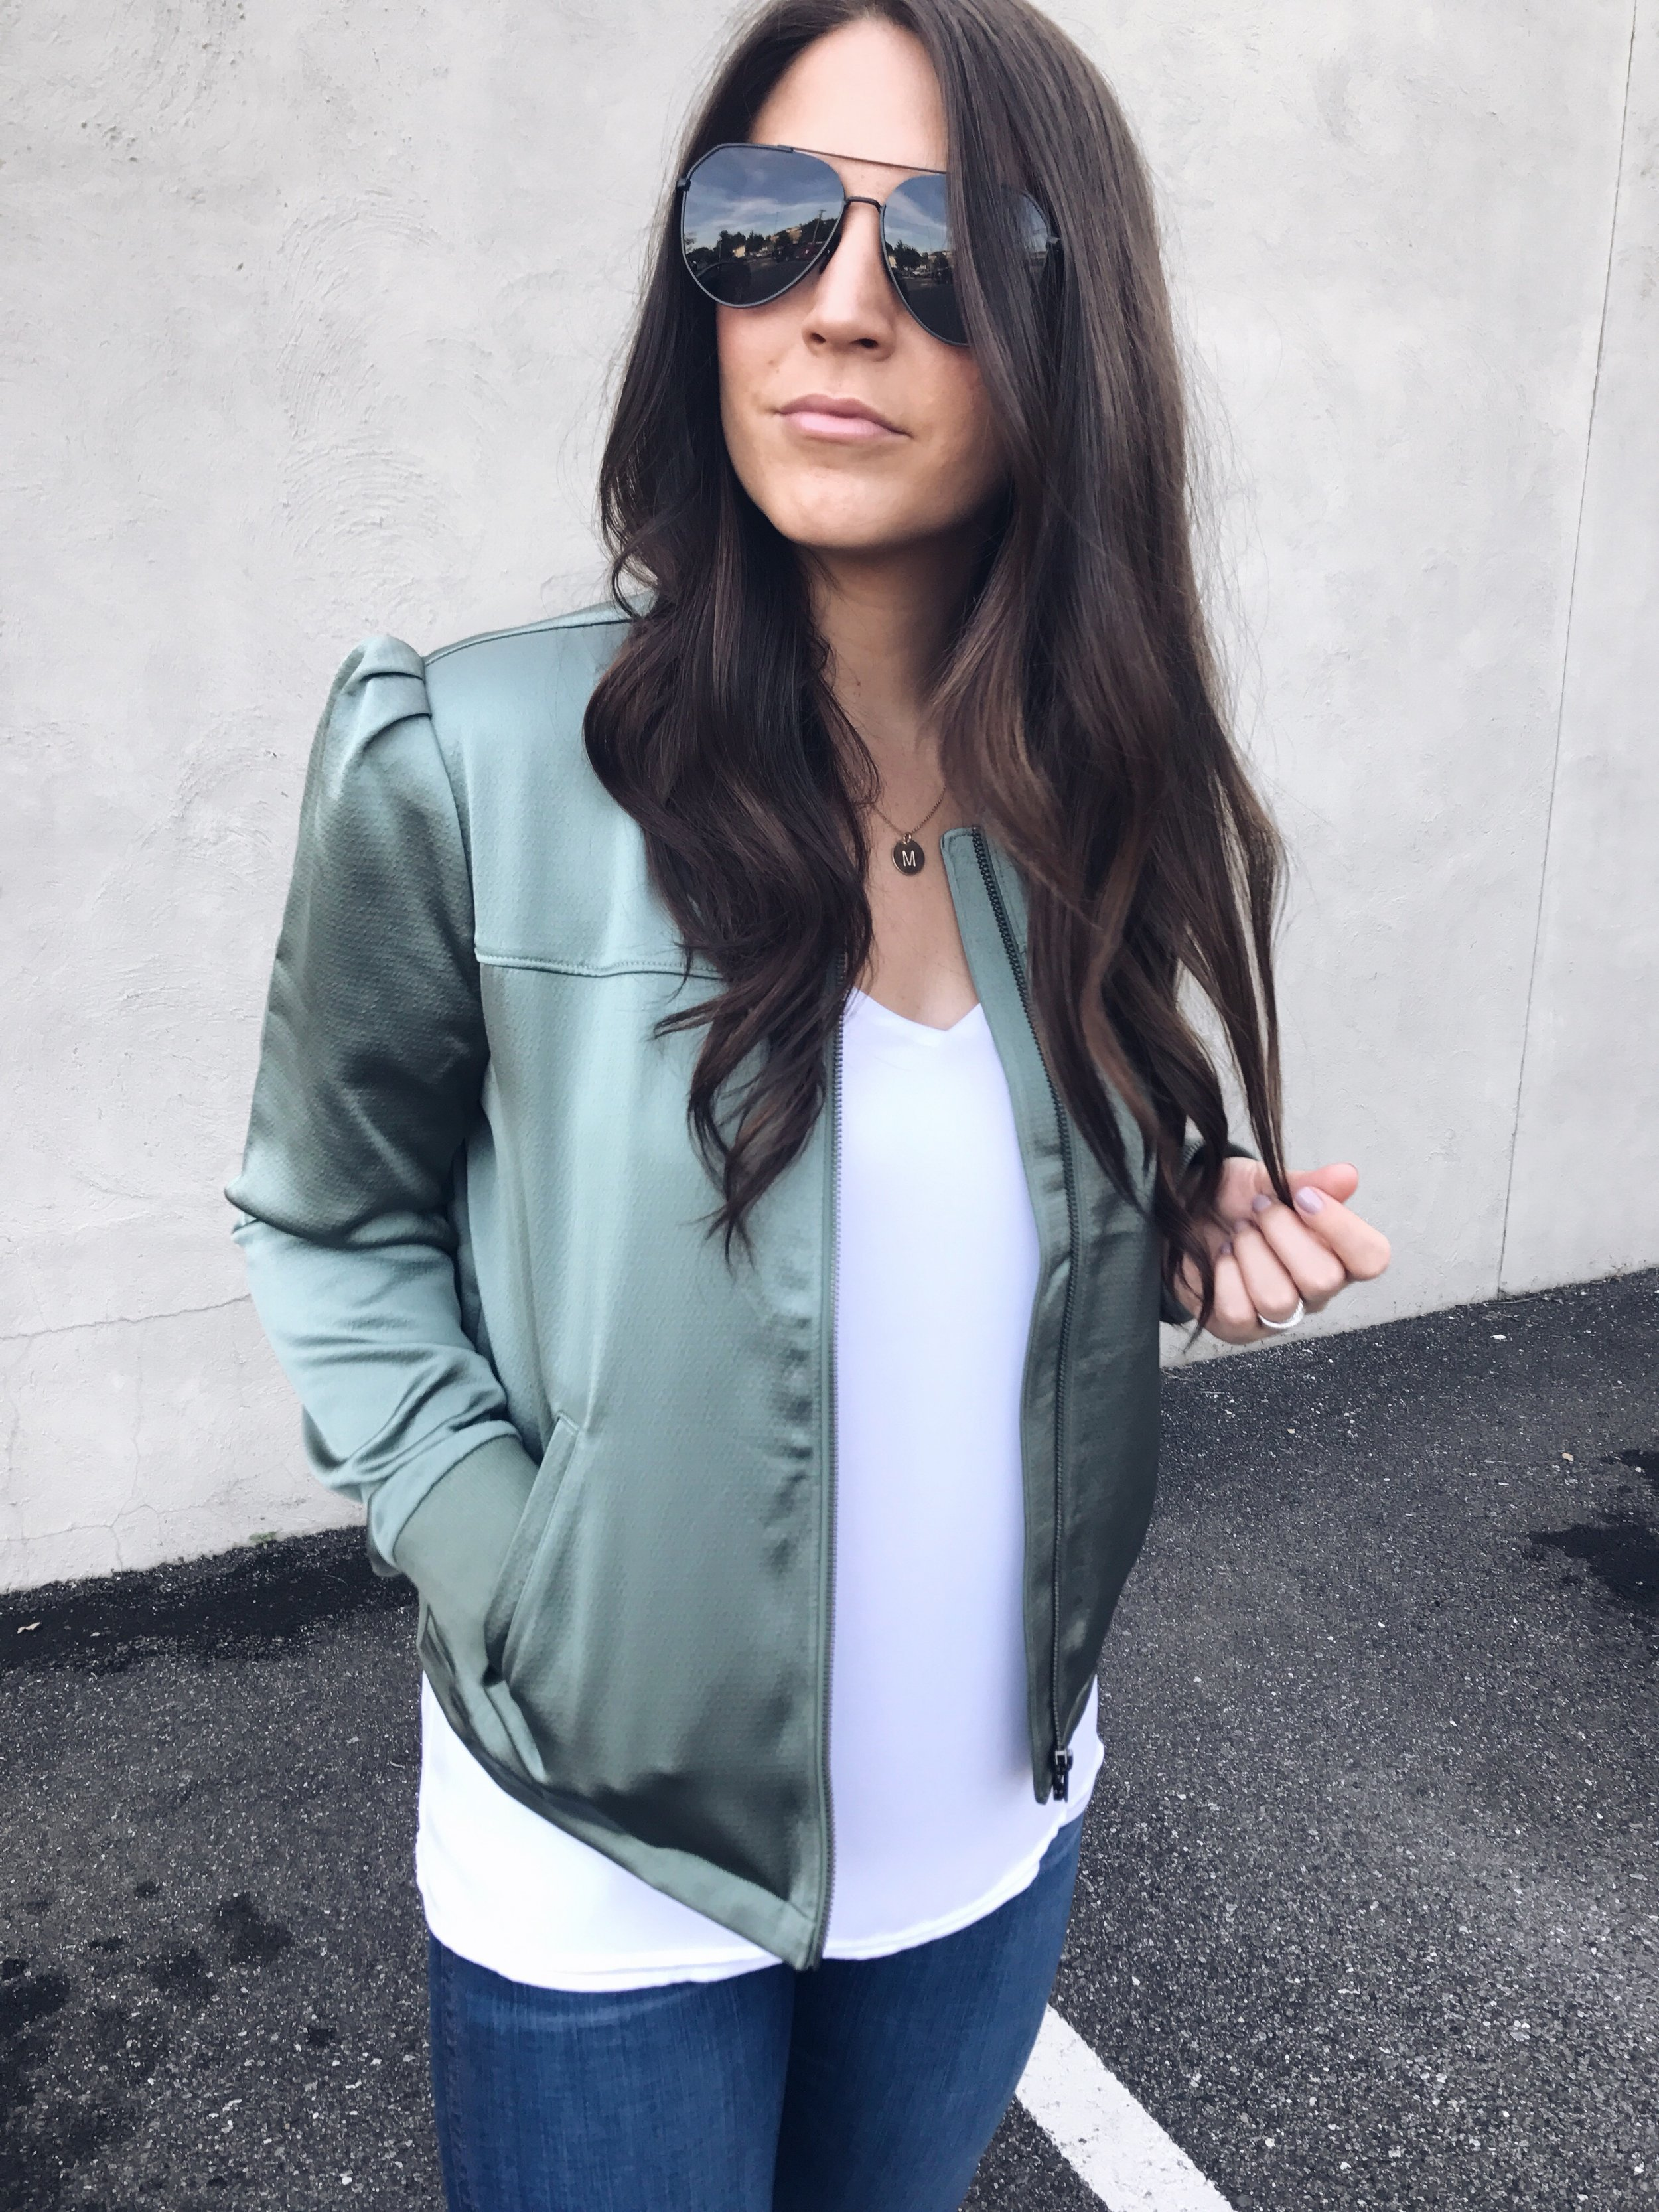 fall fashion / fall outfit idea / fall outfit inspiration / bomber jacket / how to style a bomber jacket